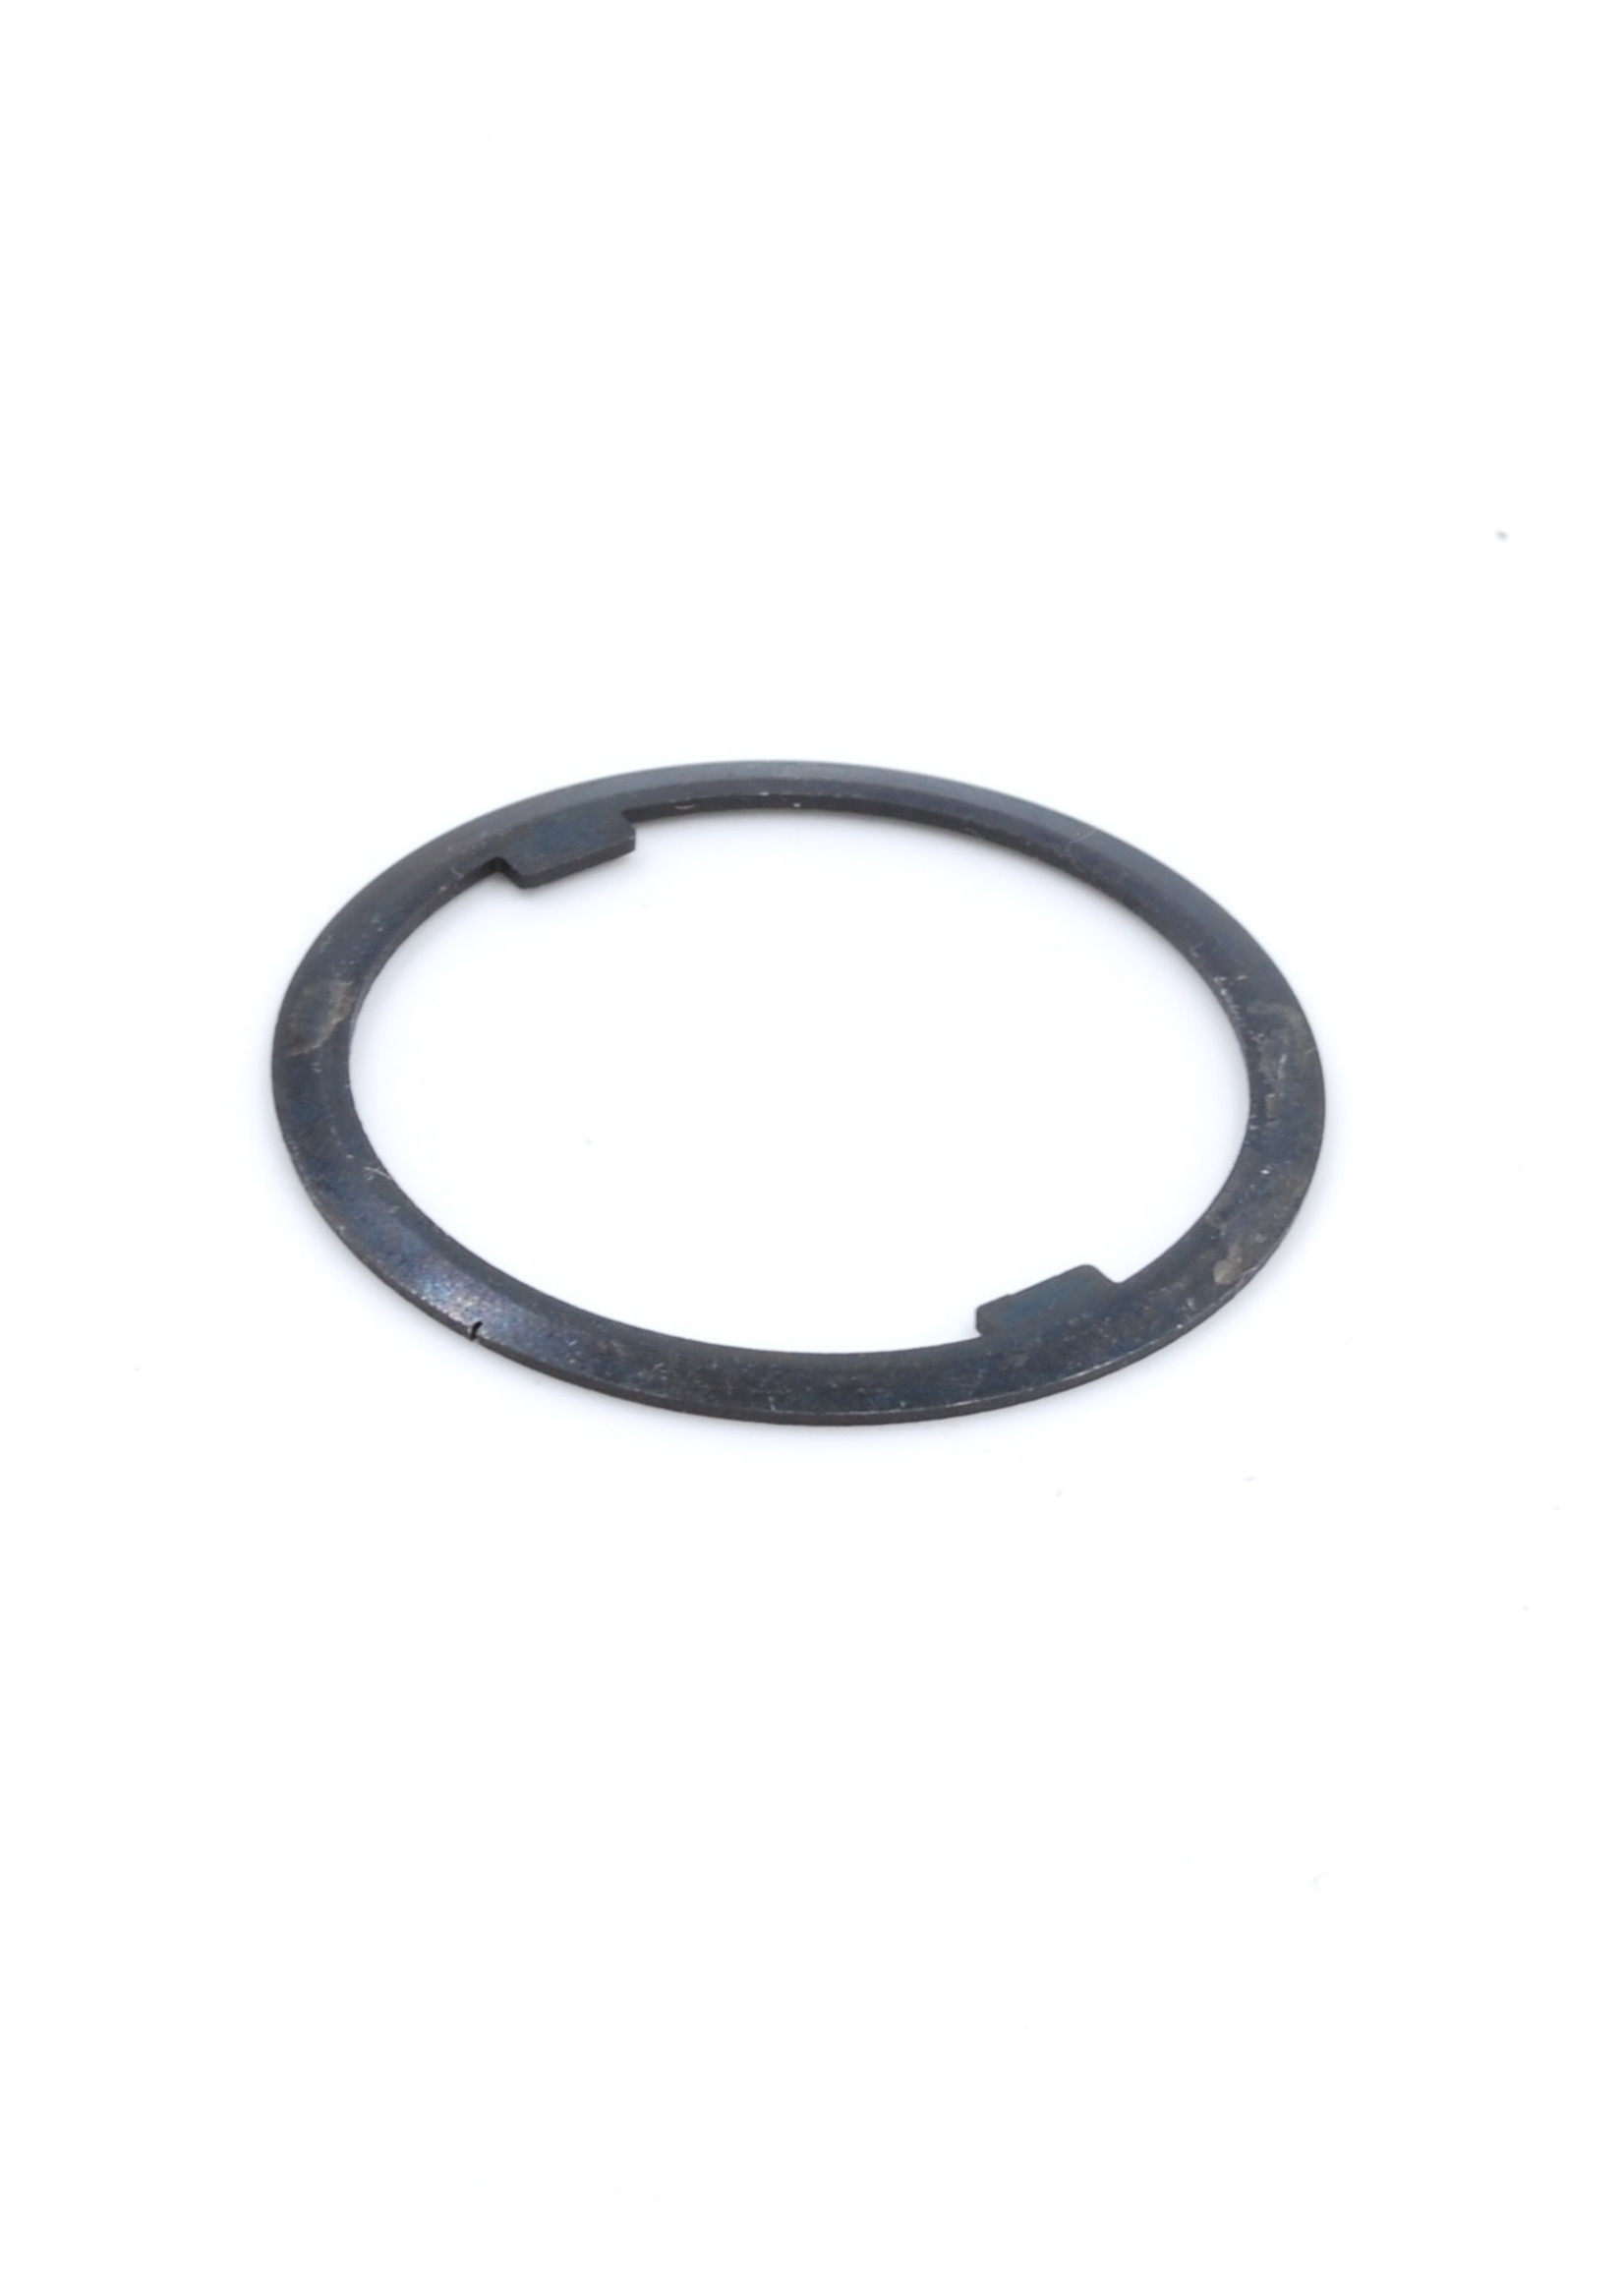 MP40 Safety Ring (Collar Nut)